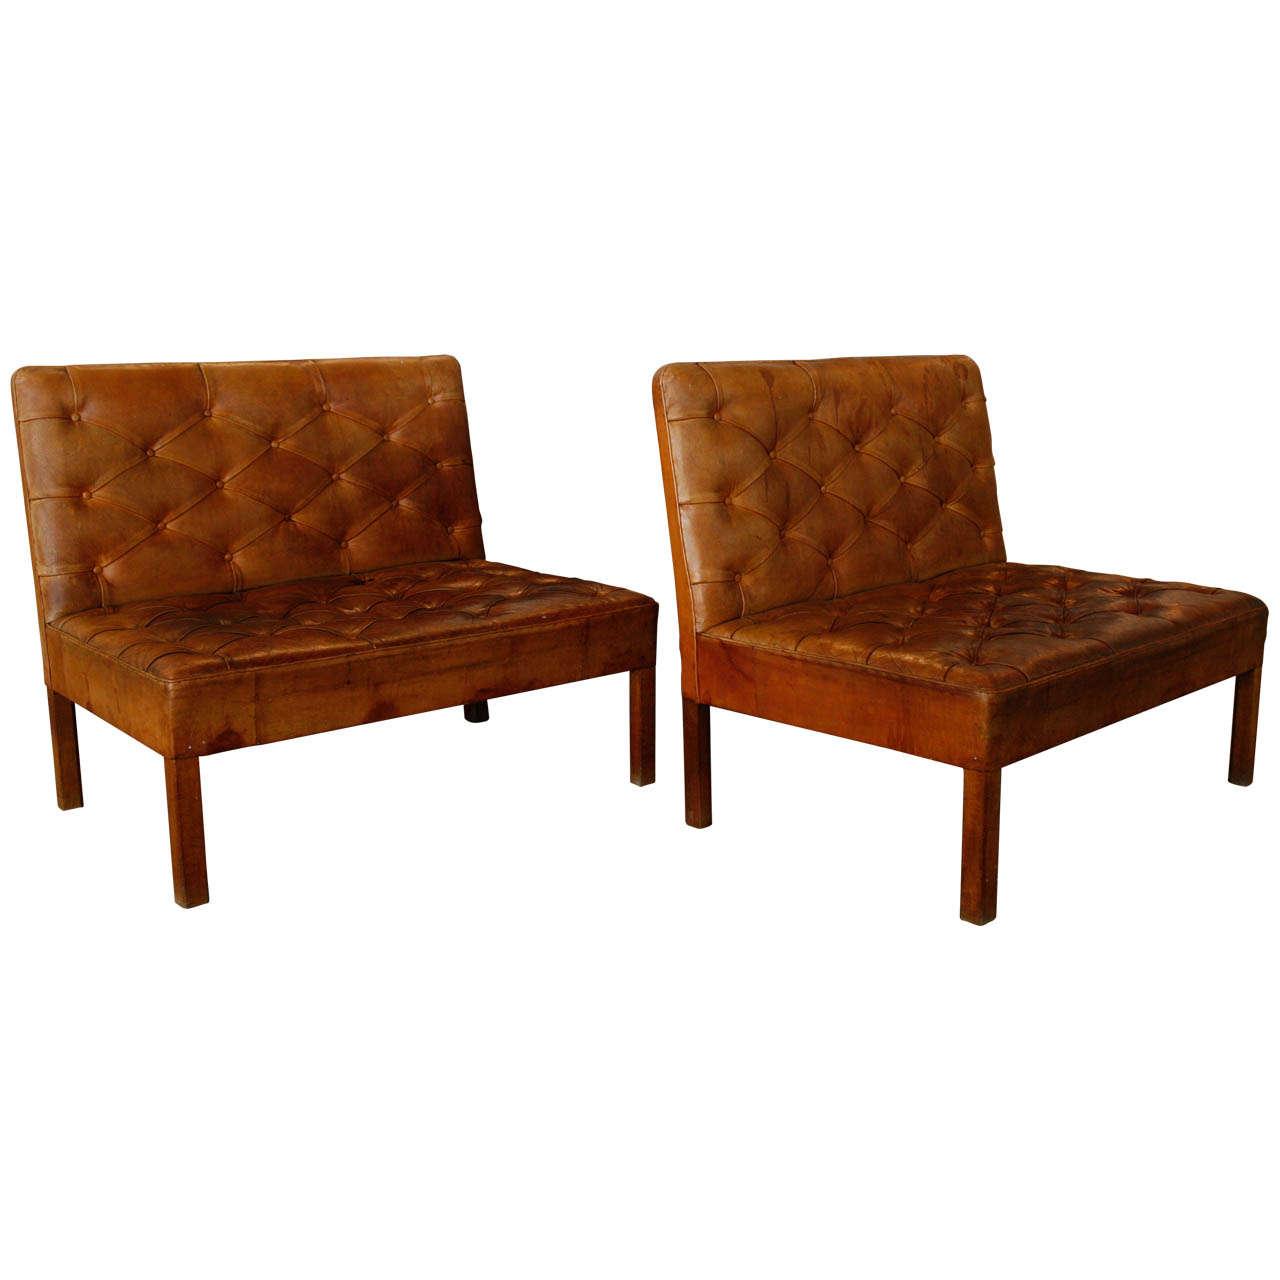 Pair of Kaare Klint Tufted Leather Settees Denmark 1930  : X from 1stdibs.com size 1280 x 1280 jpeg 72kB